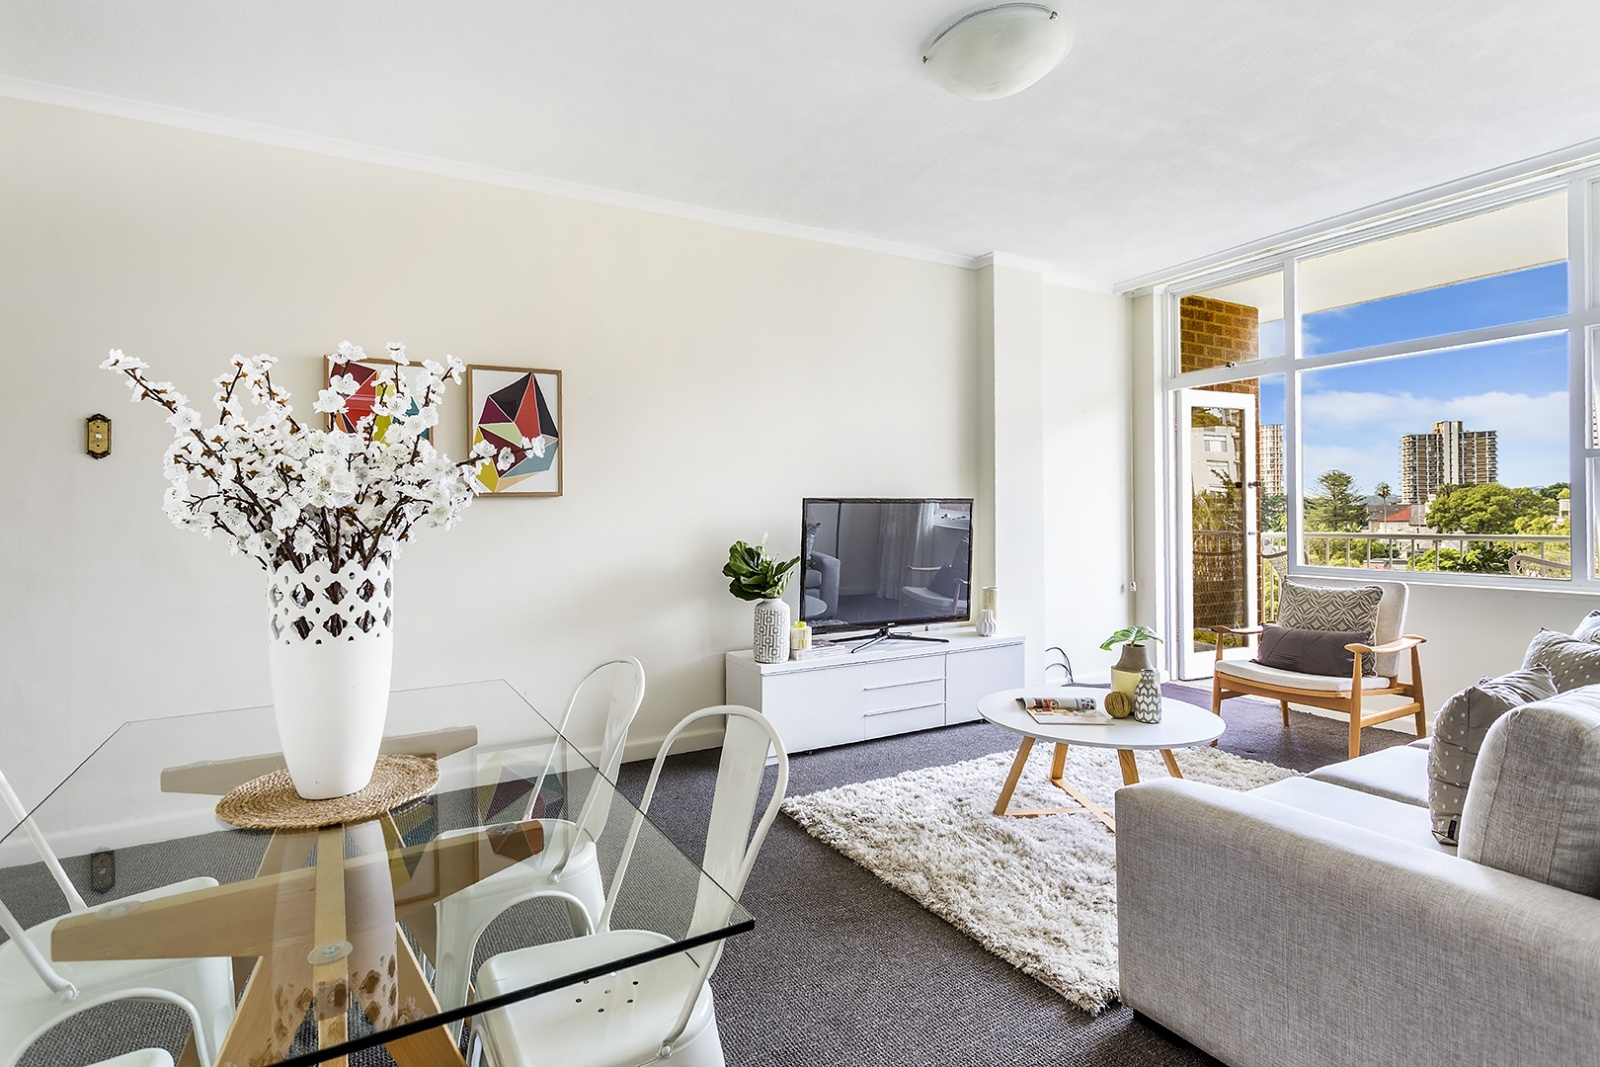 For sale: 2 bedroom, 1 bathroom apartment at 73/11 Yarranabbe Road, Darling Point, NSW .